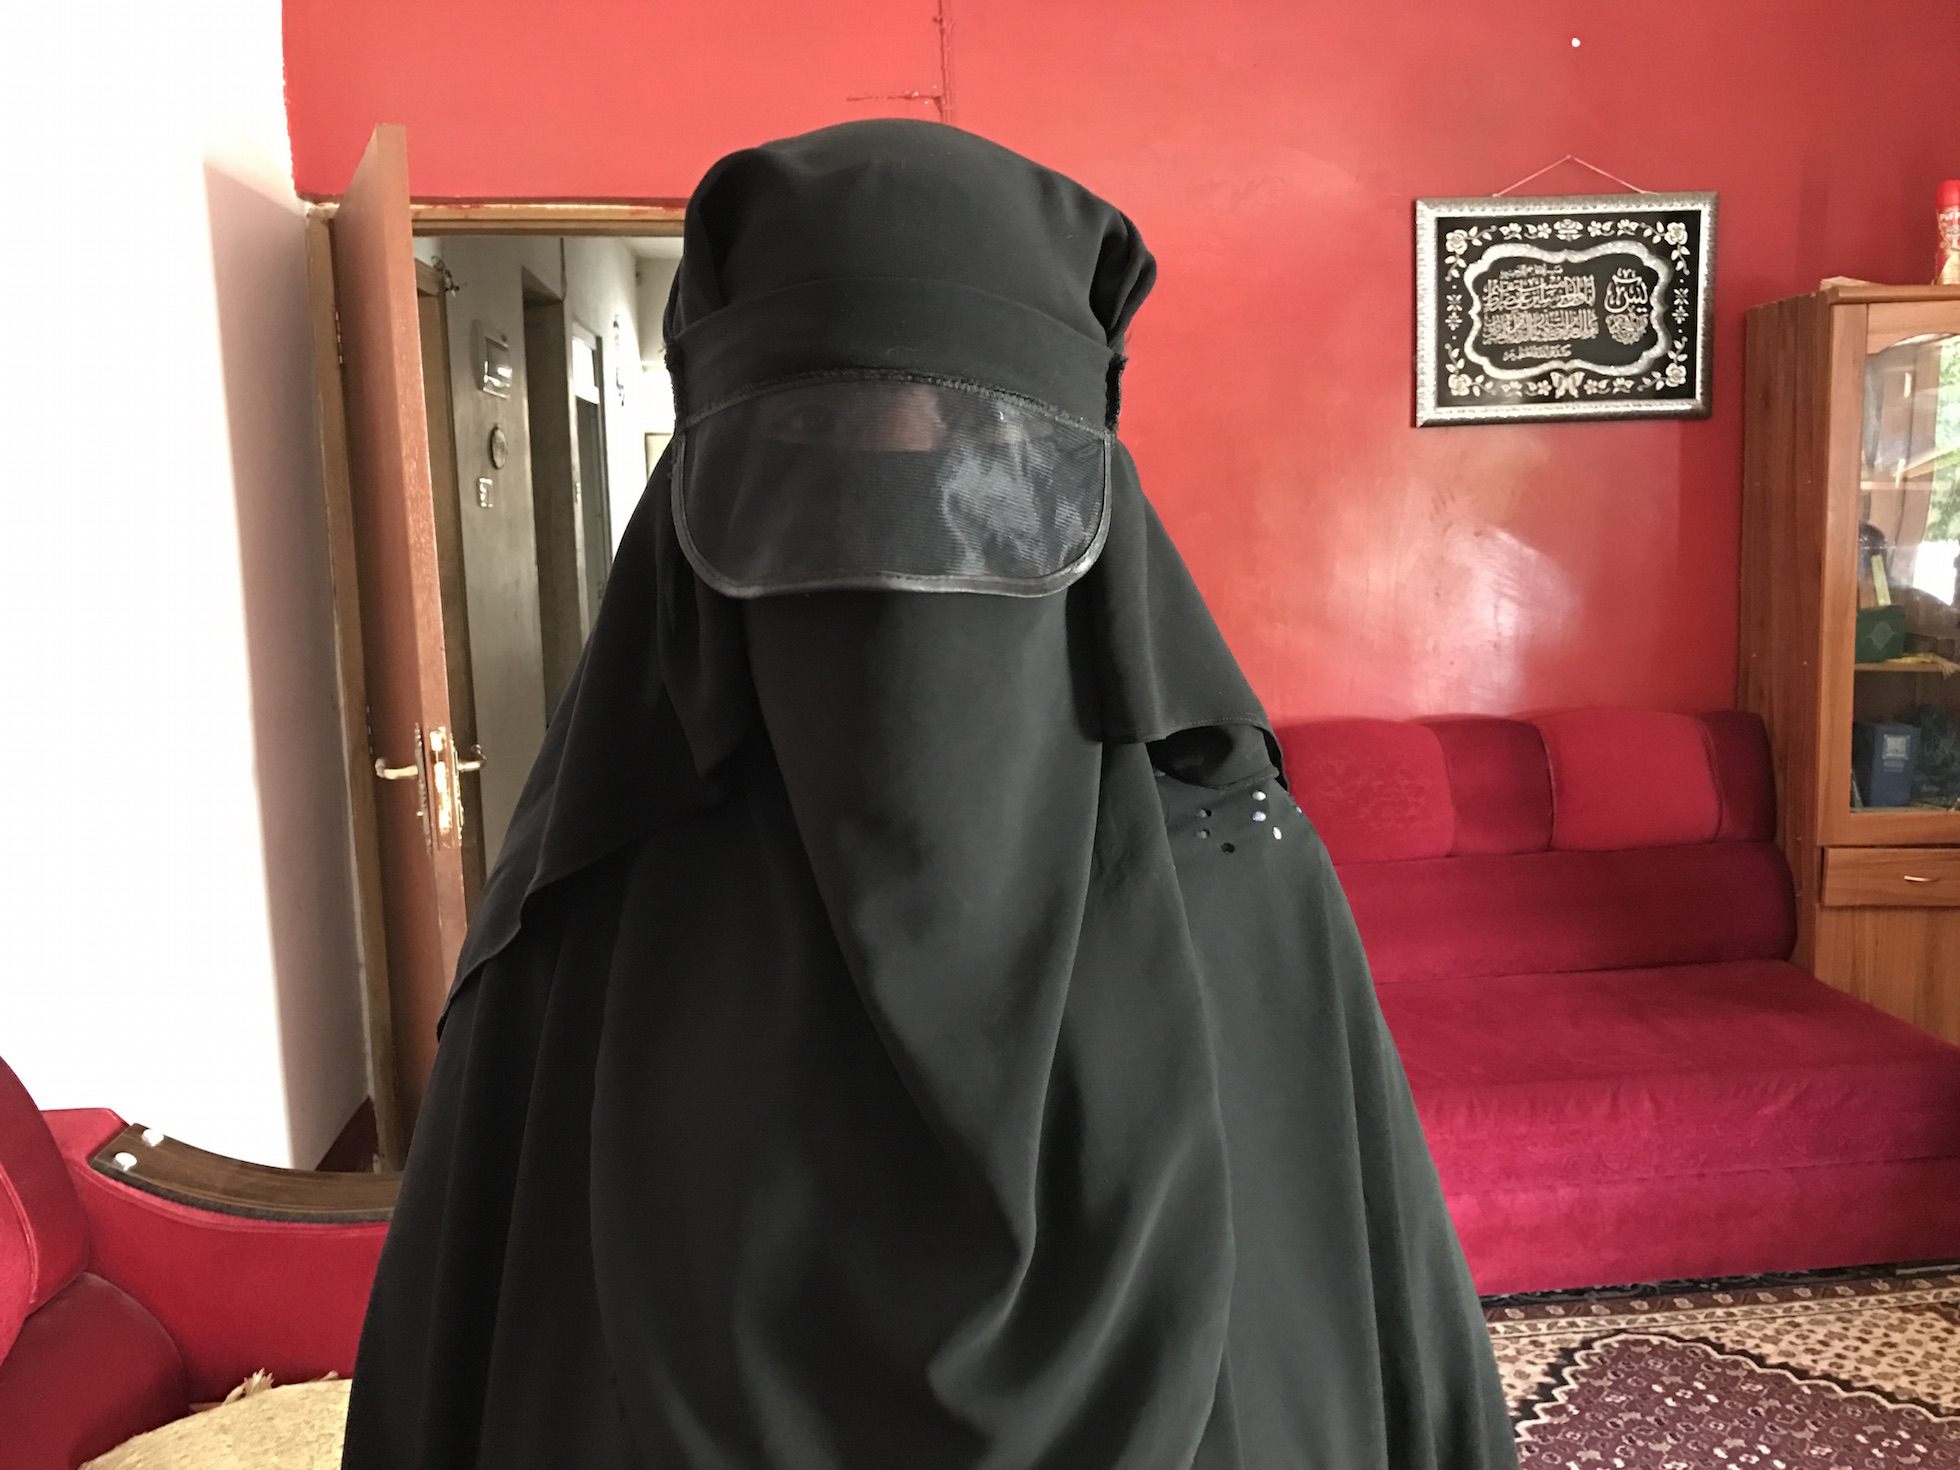 Nawal had to cover even her eyes before stepping out of home while ISIS controlled Mosul.